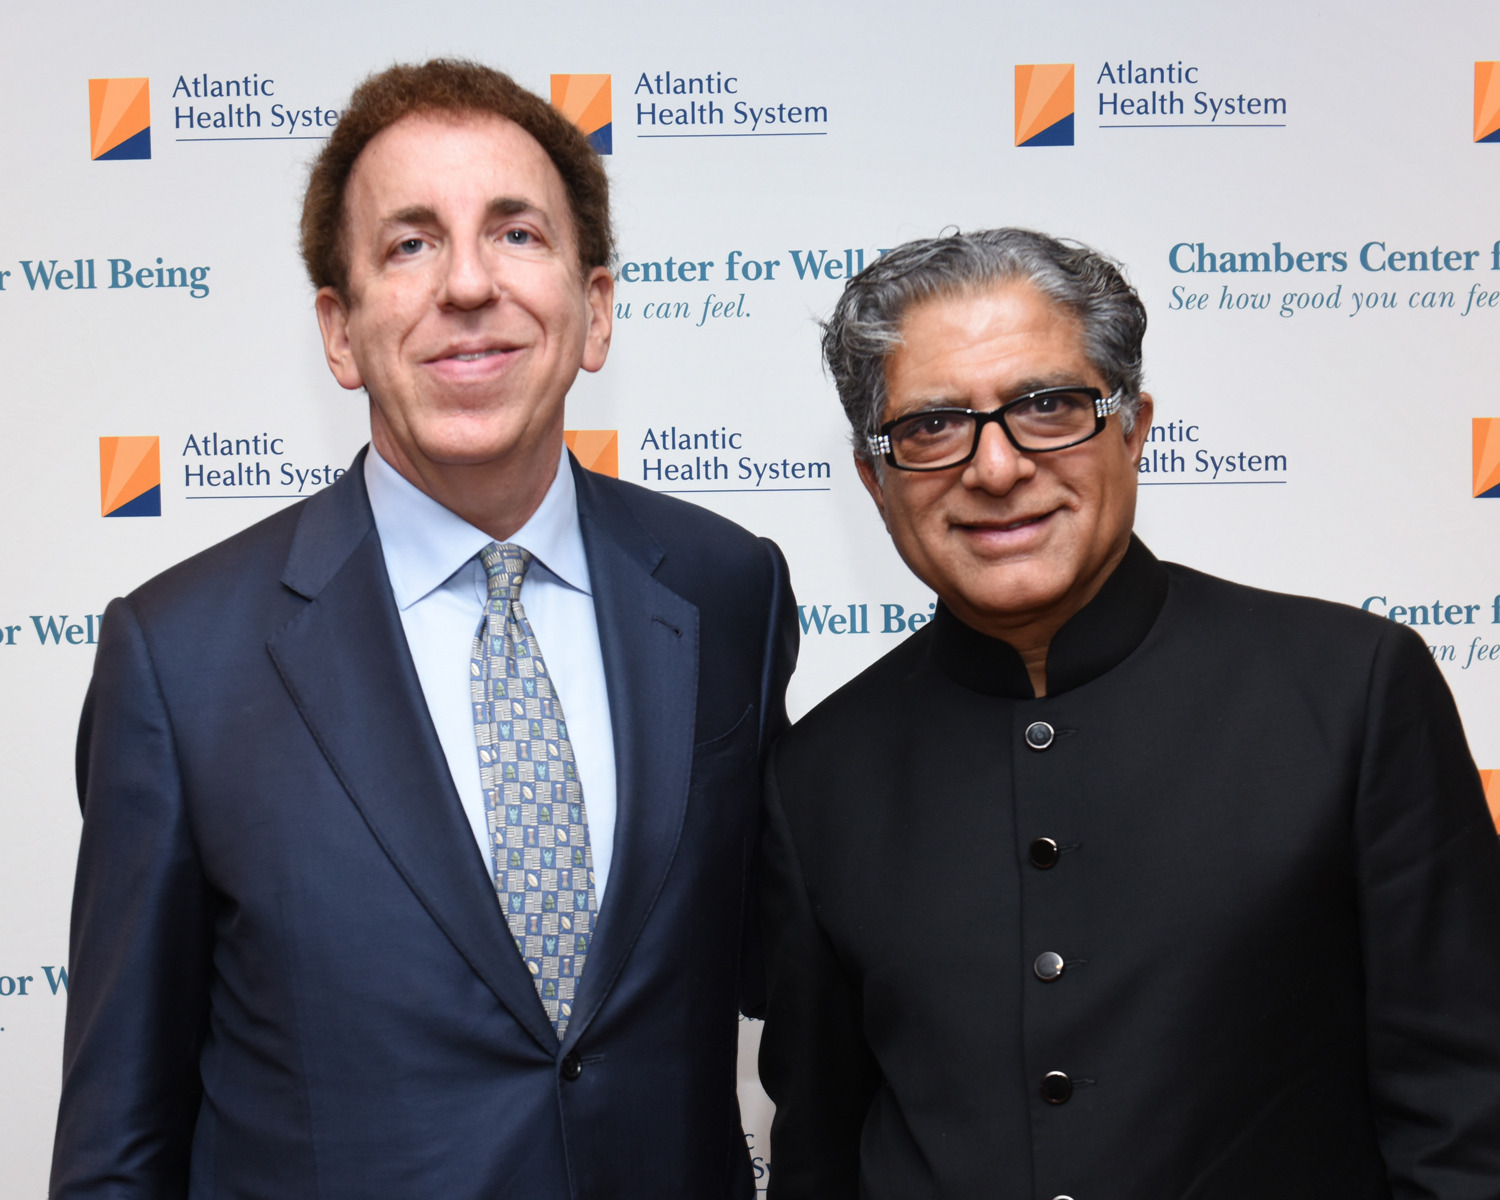 0f8ee1bfe76e530e94a8_Drs._Deepak_Chopra_and_Dean_Ornish_at_the_Chambers_Center_for_Well_Being_Opening_on_Oct._9__2014.jpg